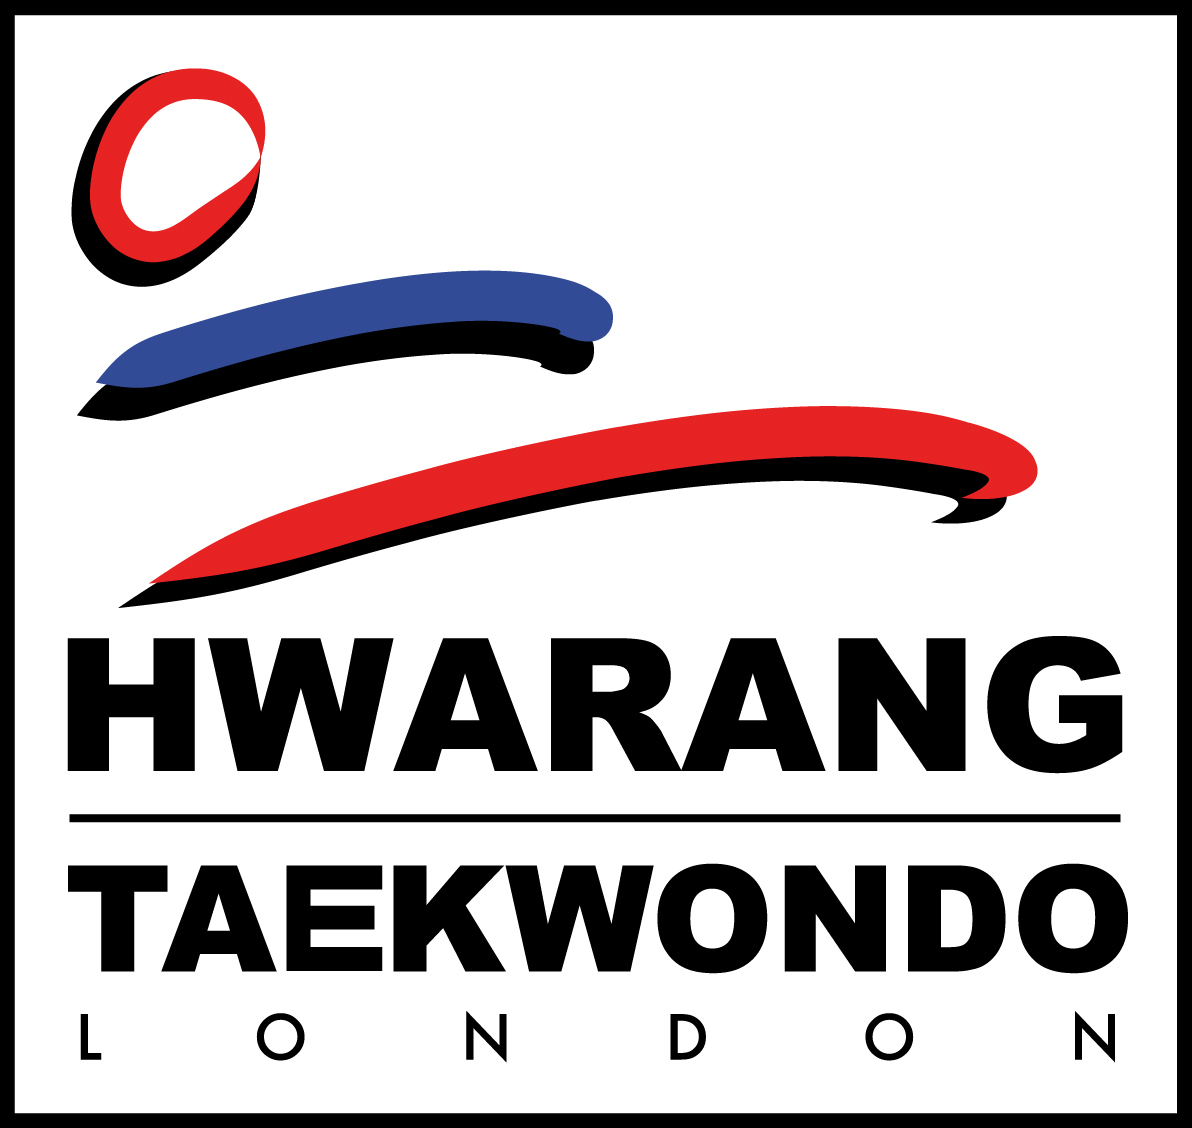 Hwarang Taekwondo London